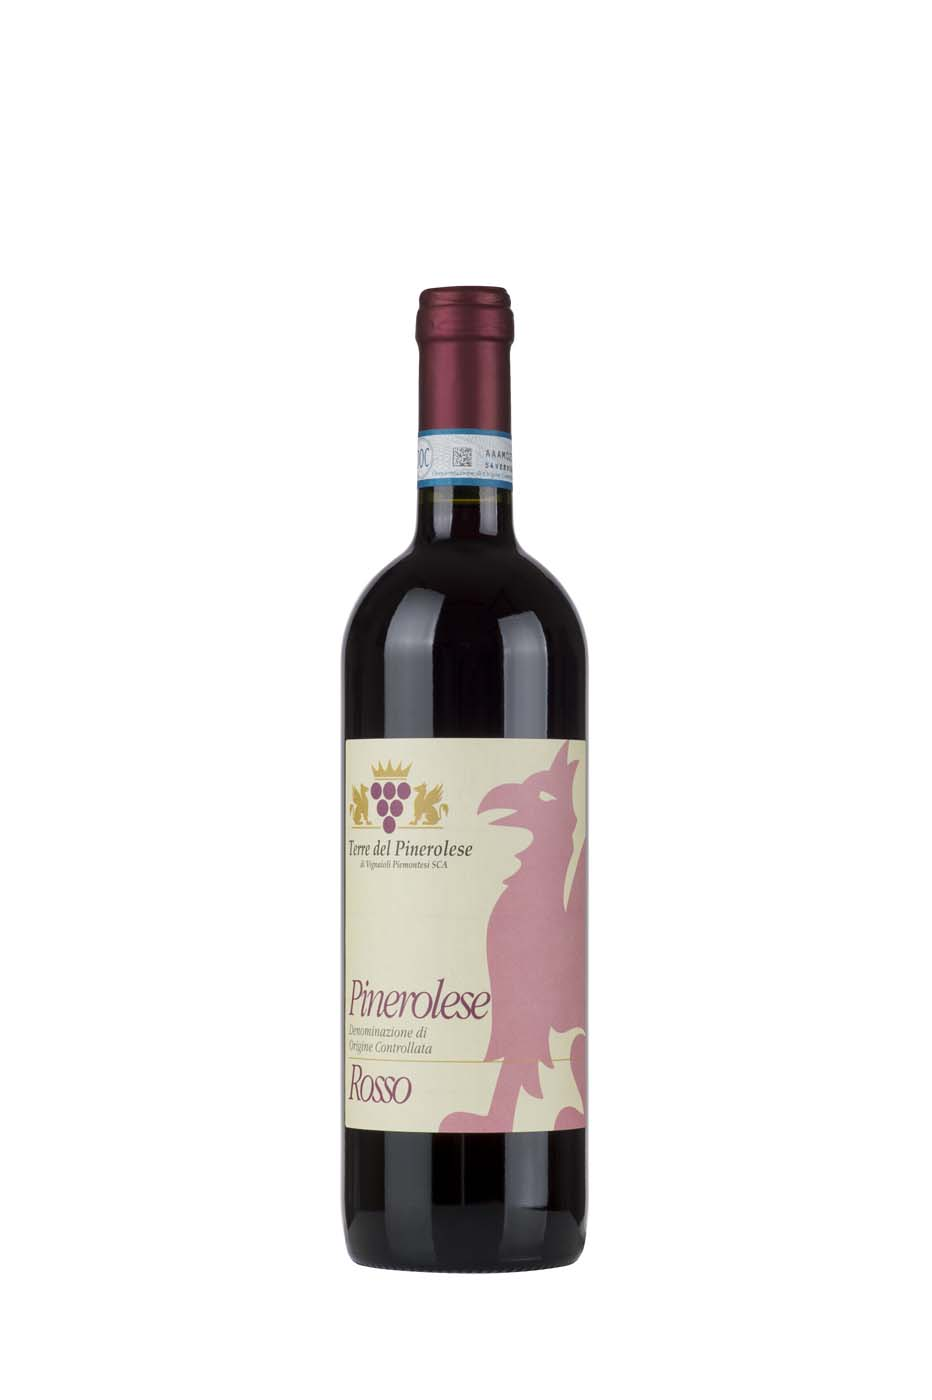 Pinerolese doc Rosso